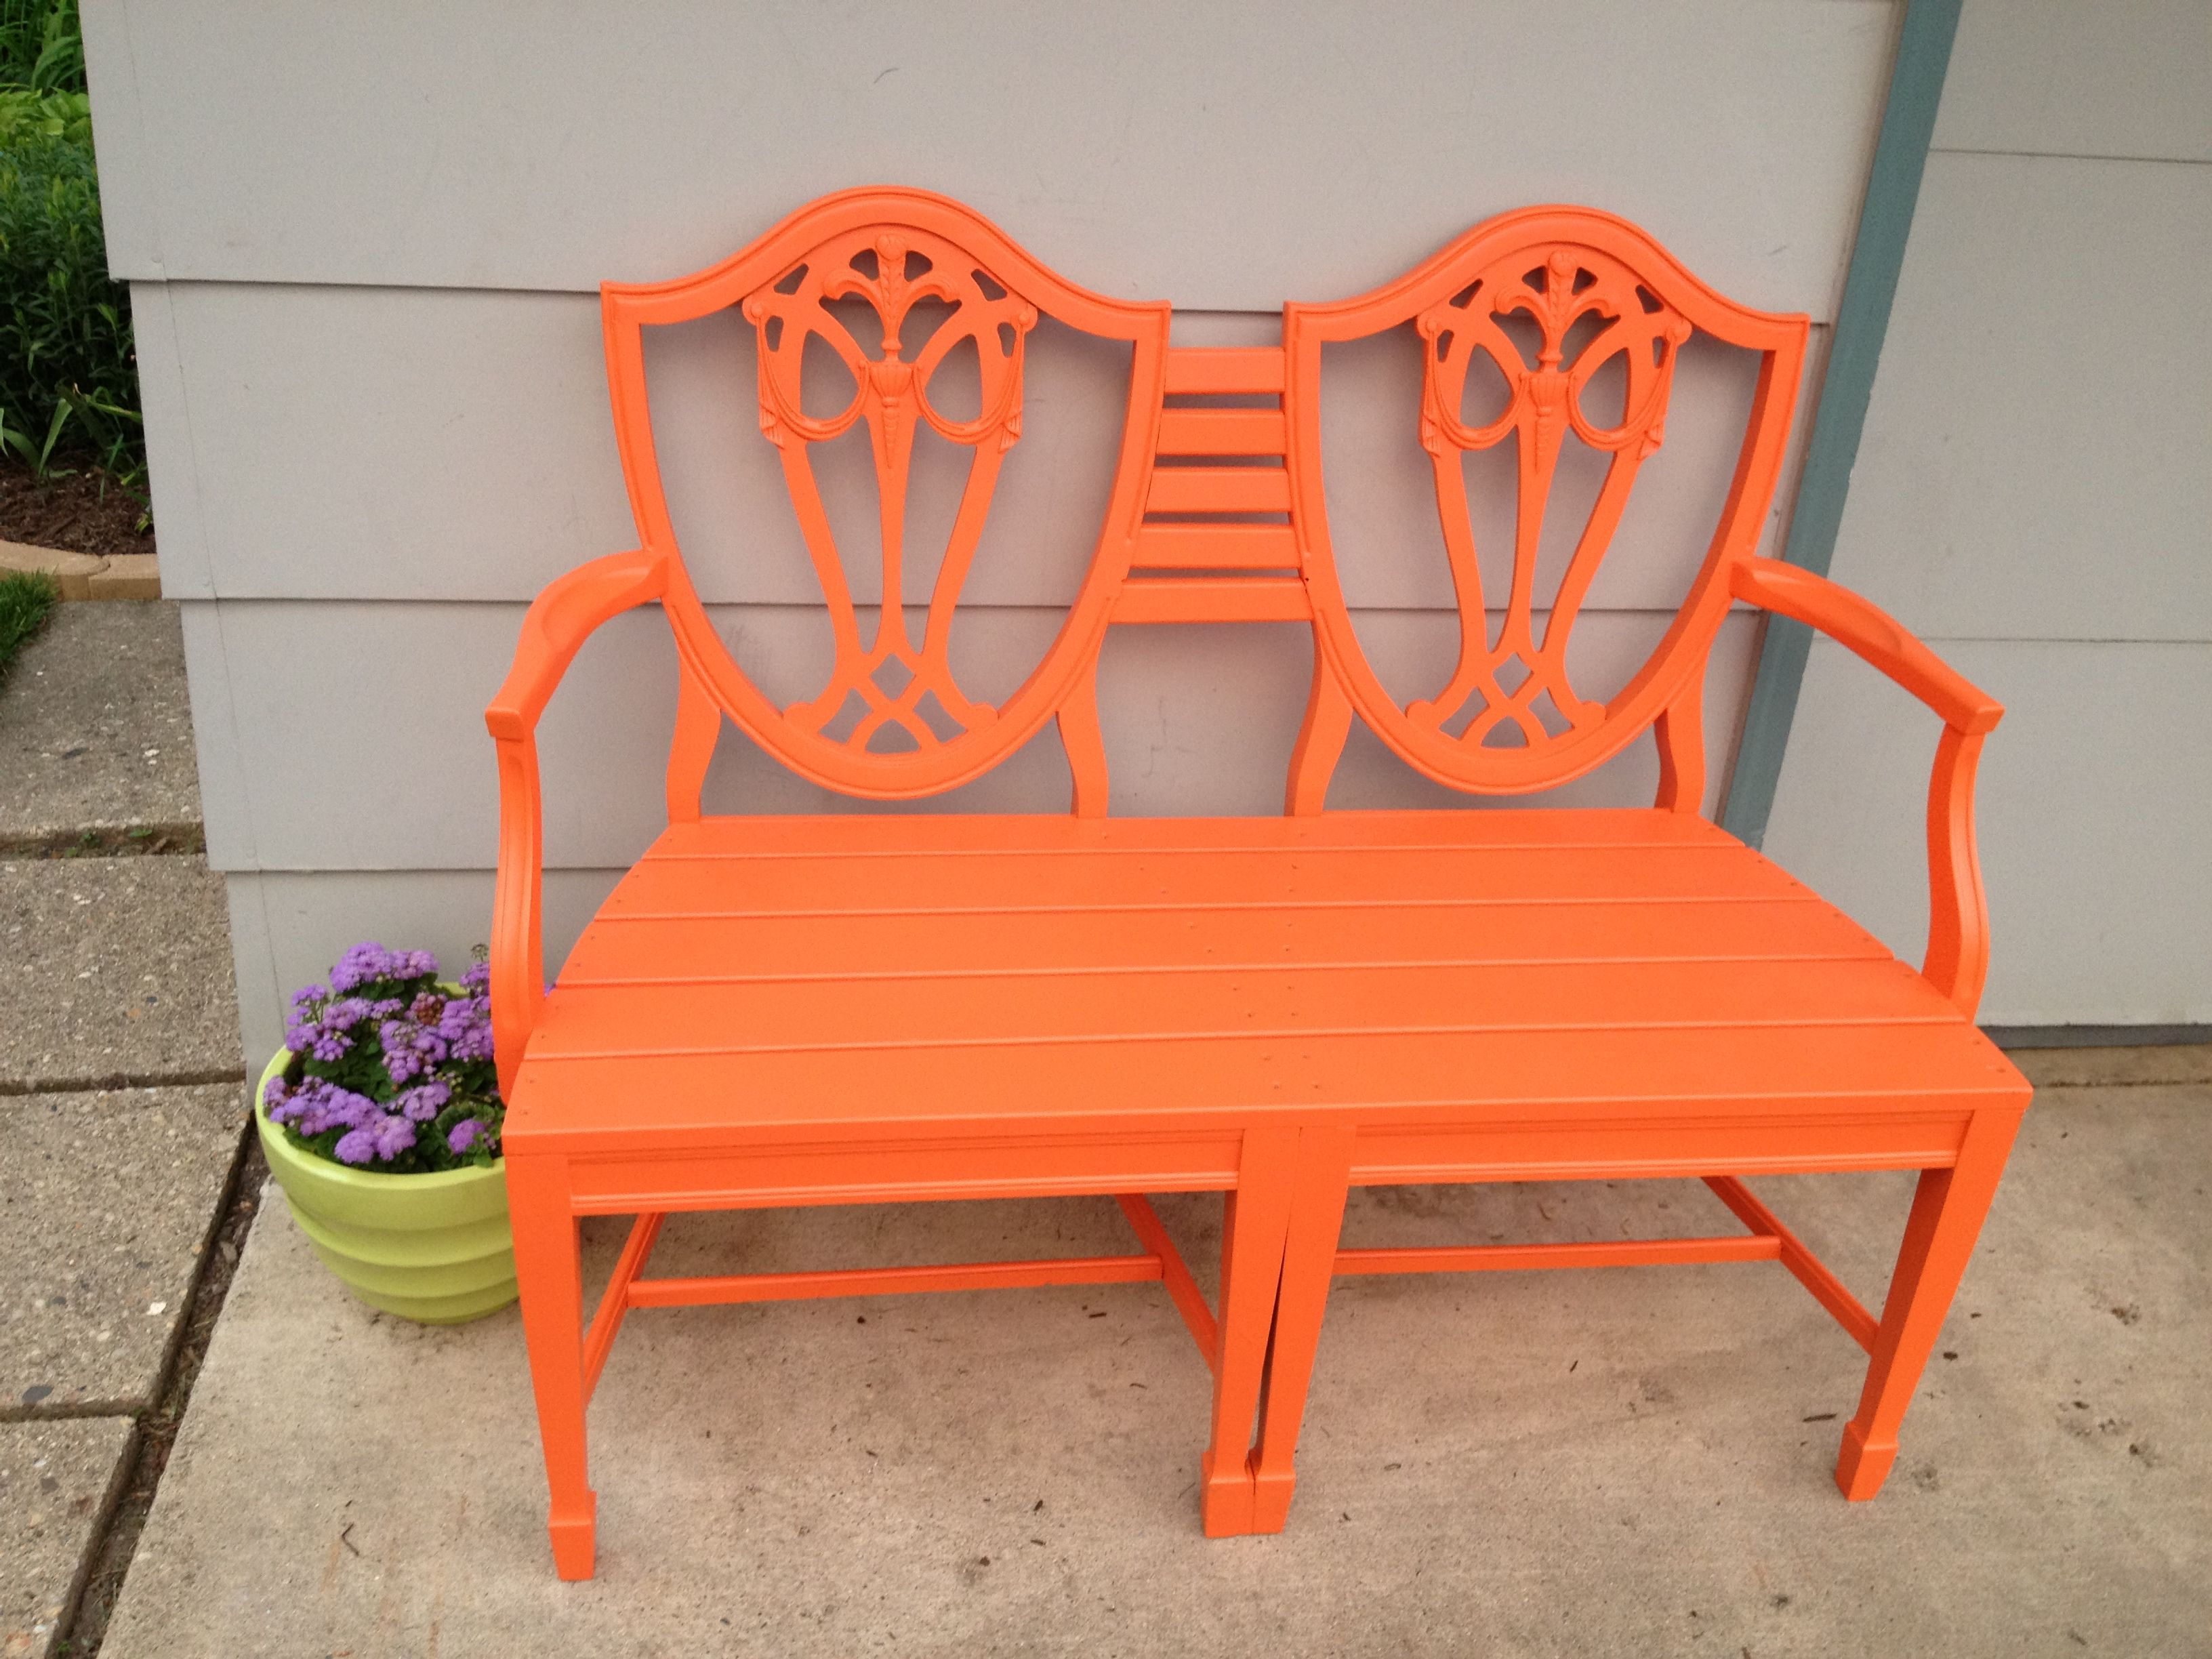 High Quality Bench Made From Two Dining Room Chairs:))